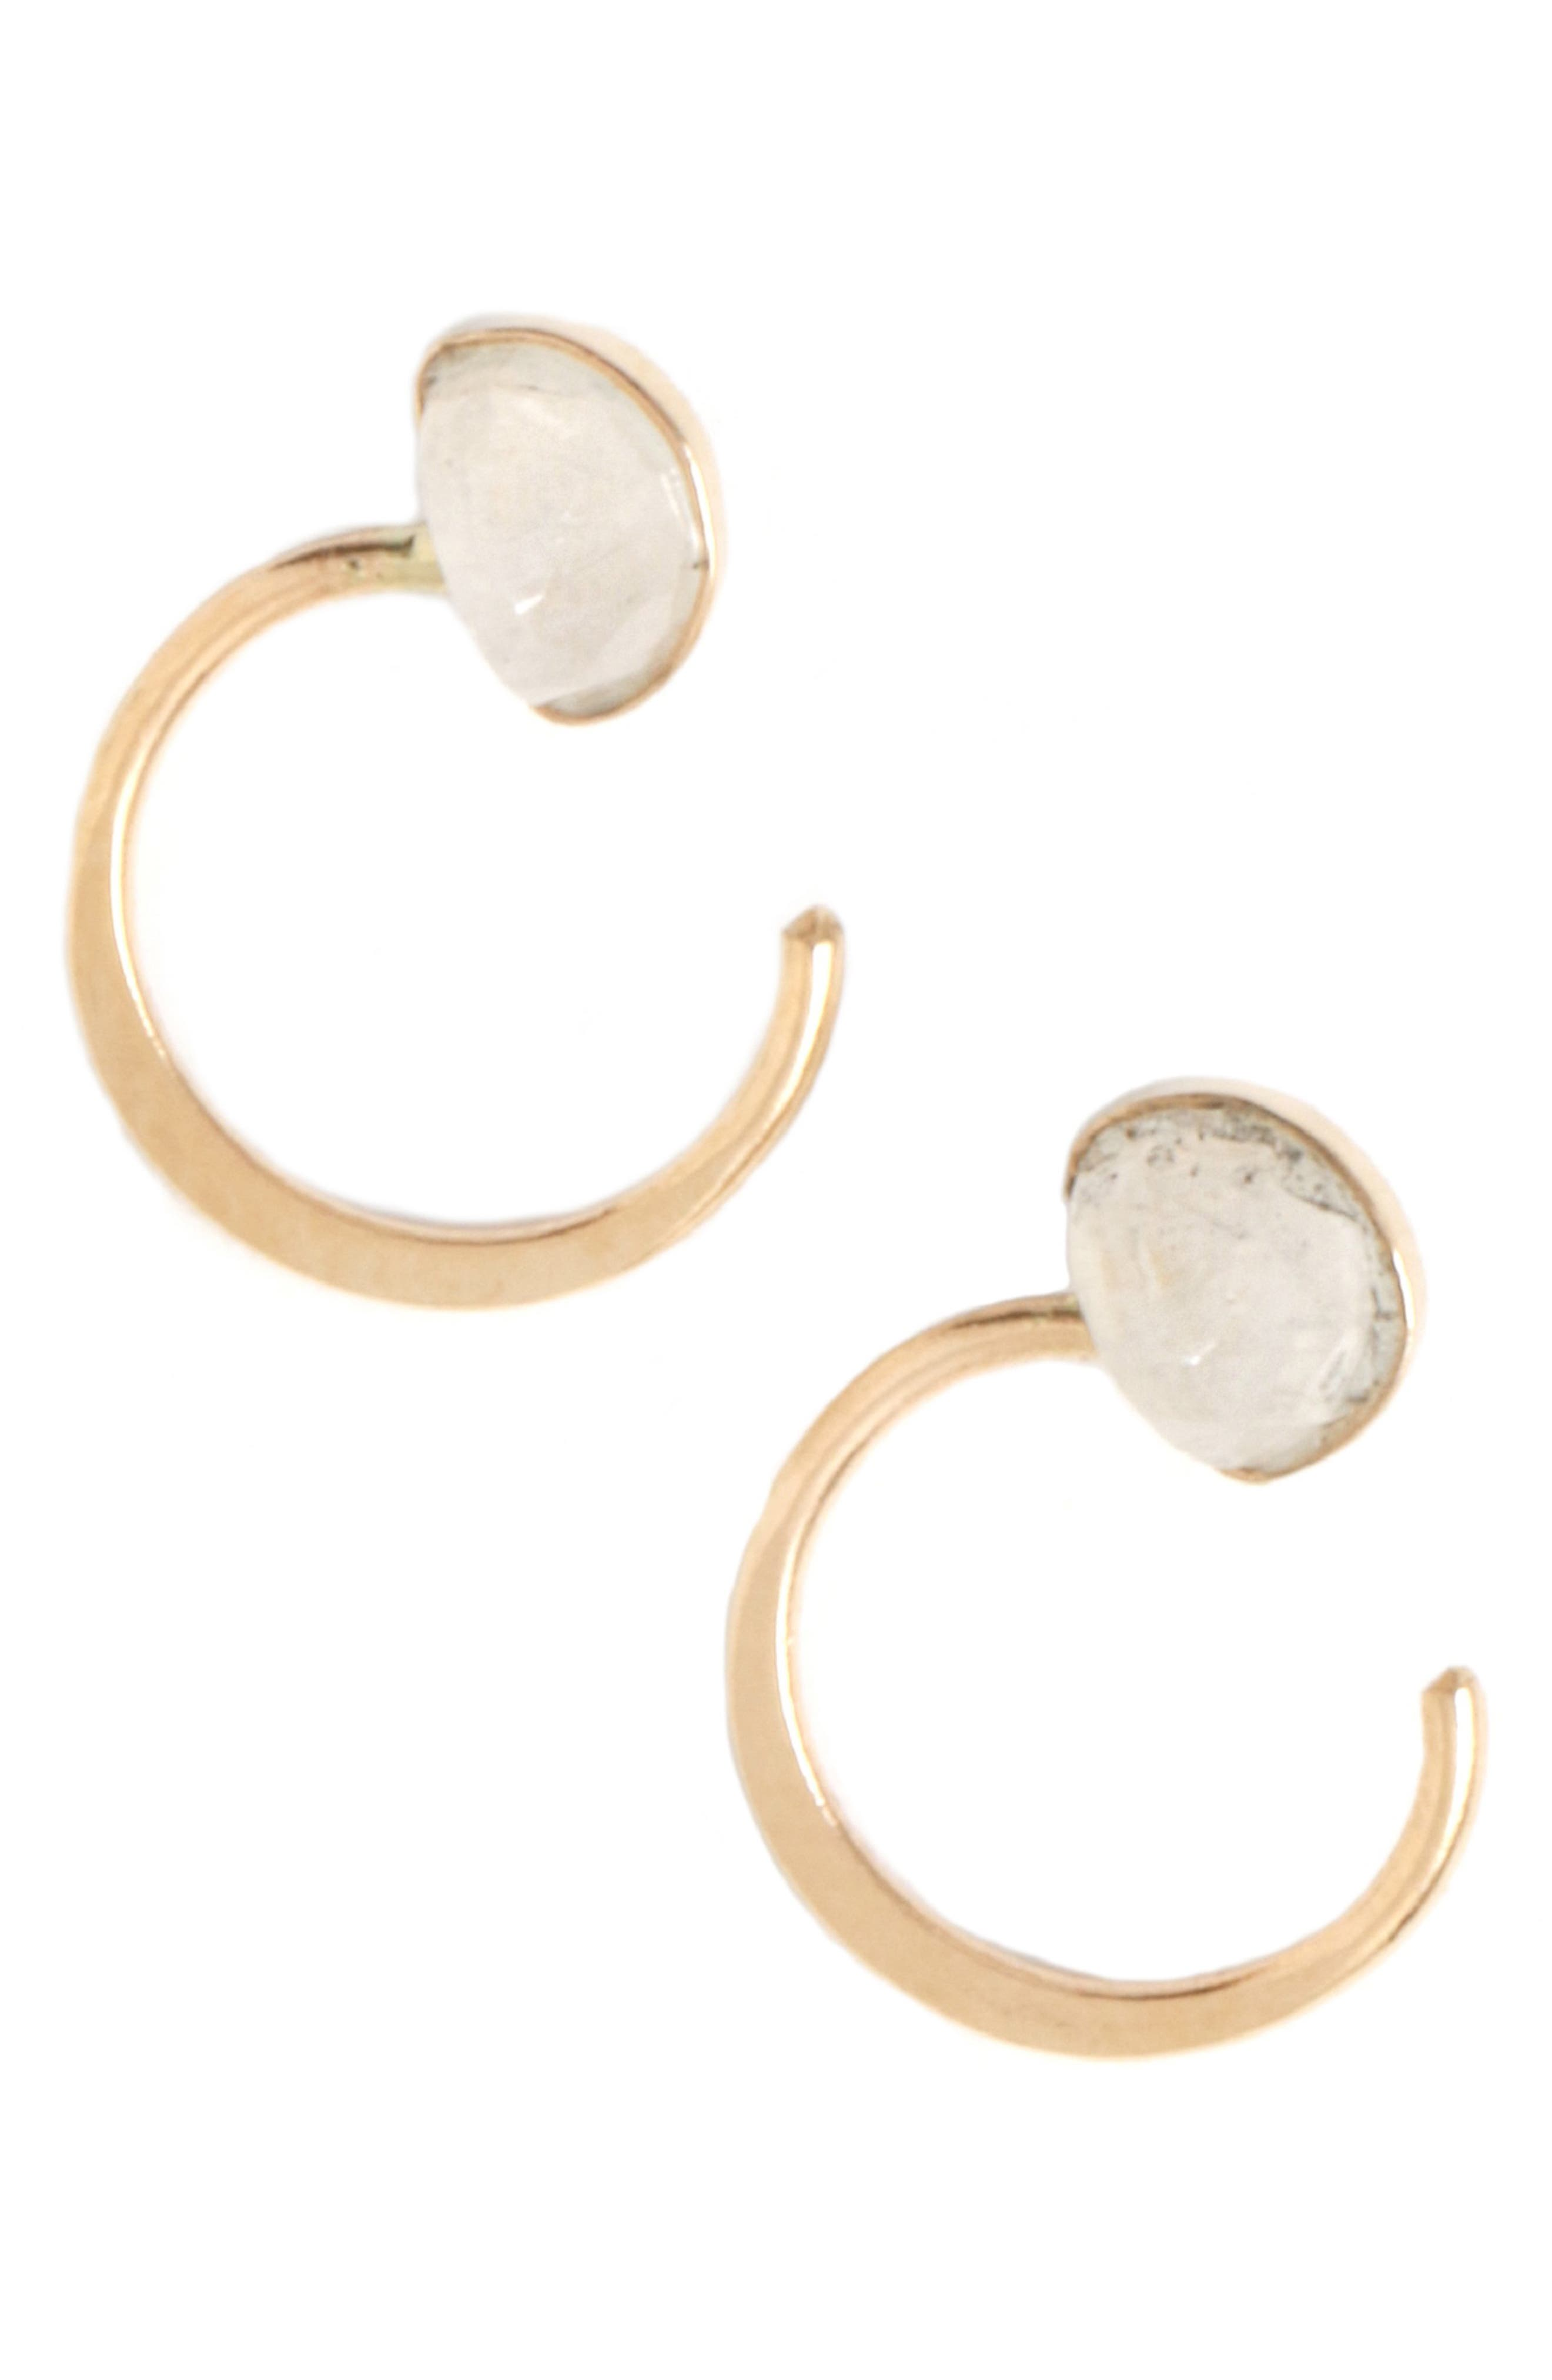 MELISSA JOY MANNING Moonstone Wrap Hug Hoop Earrings in Yellow Gold